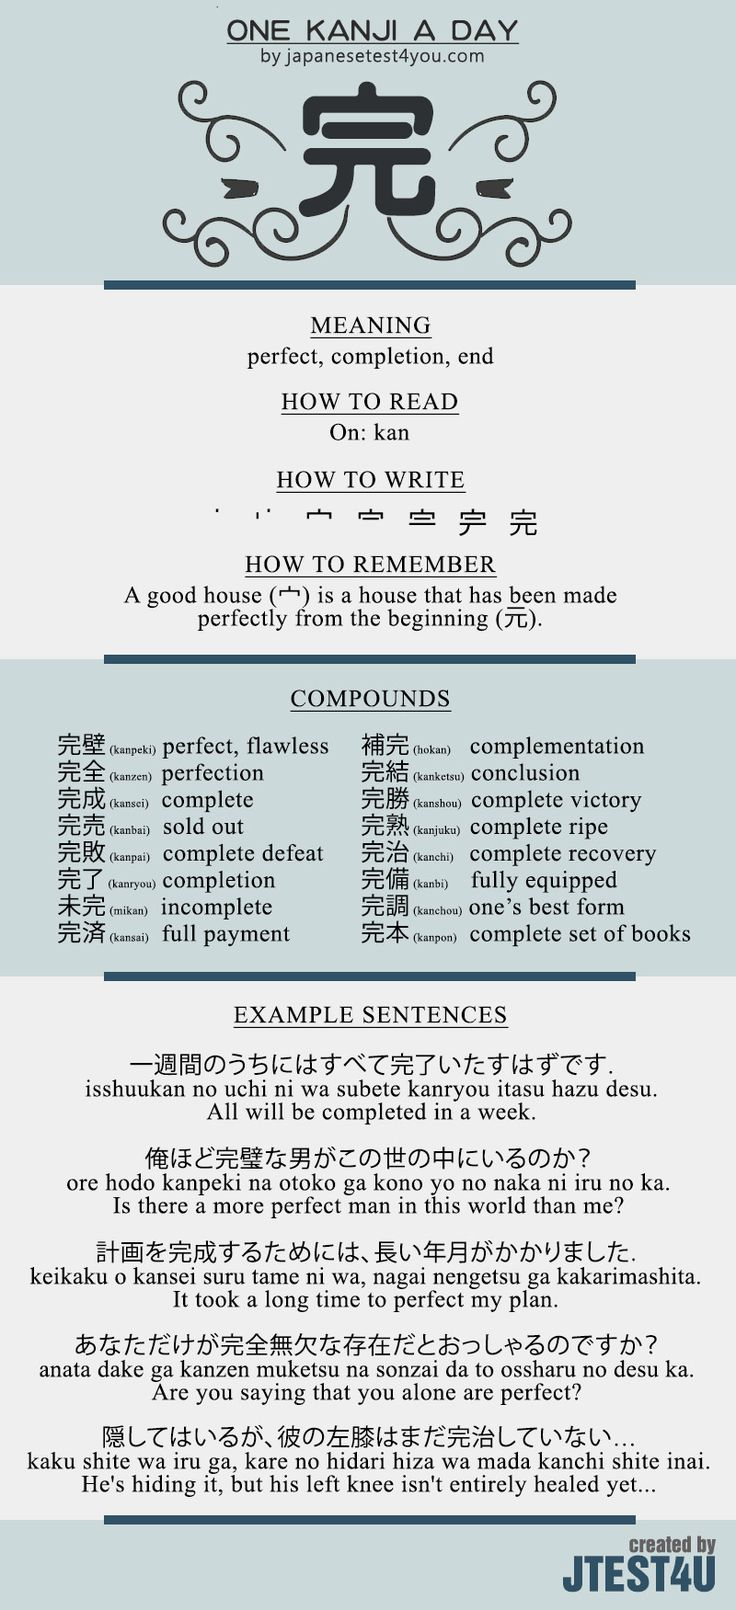 Japanese tests for you, Learn one Kanji a day with infographic: 完 Source